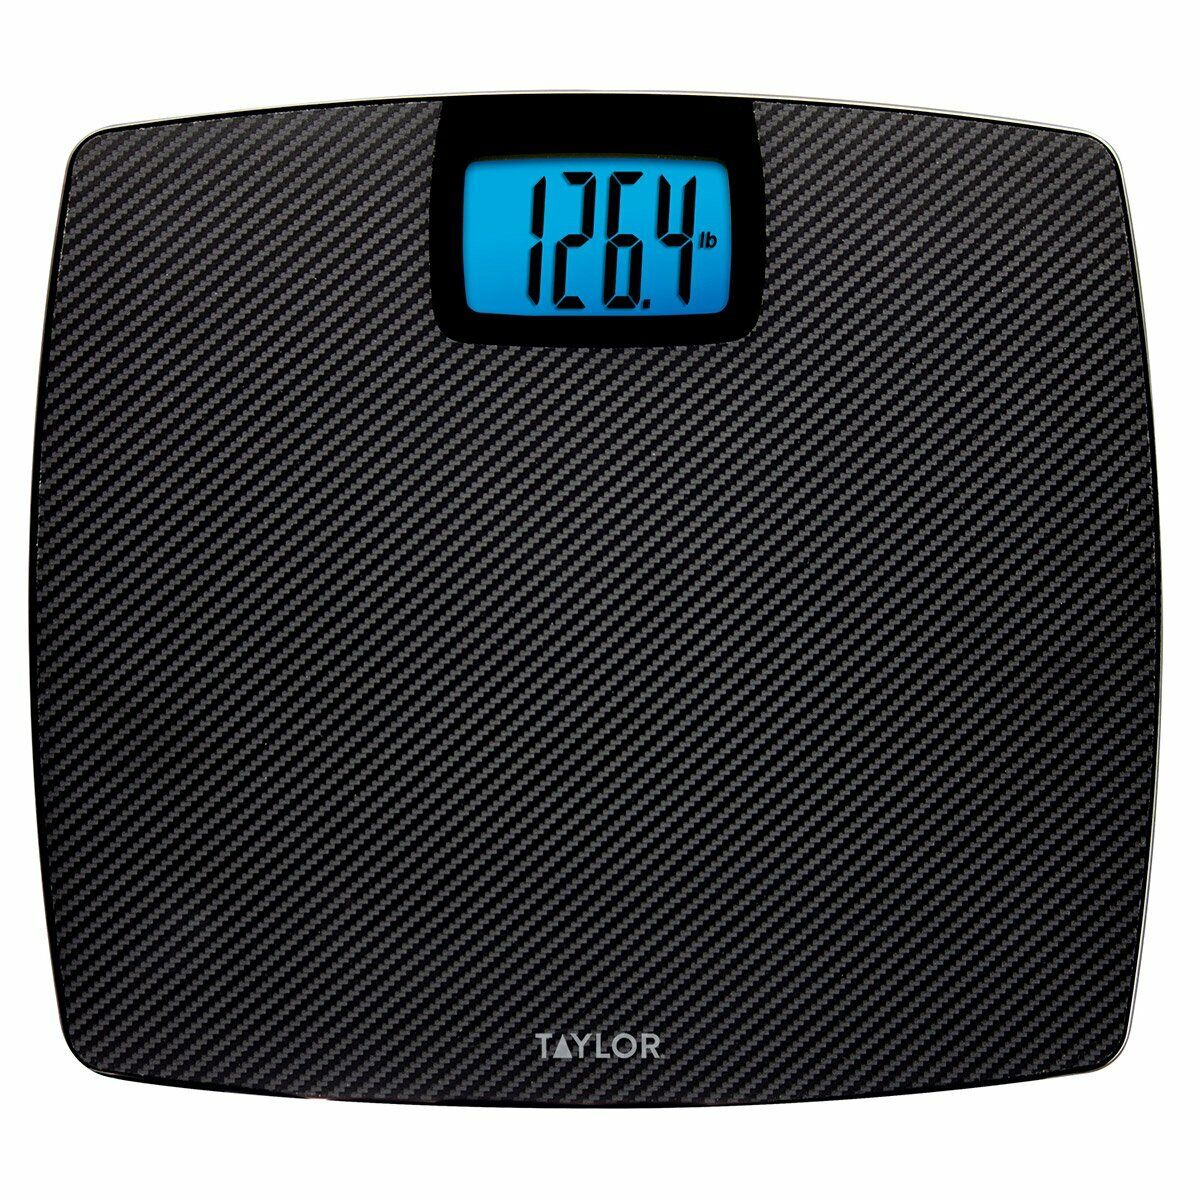 TAYLOR GLASS DIGITAL SCALE 500LB Capacity CARBON FIBER FINISH (NEW)